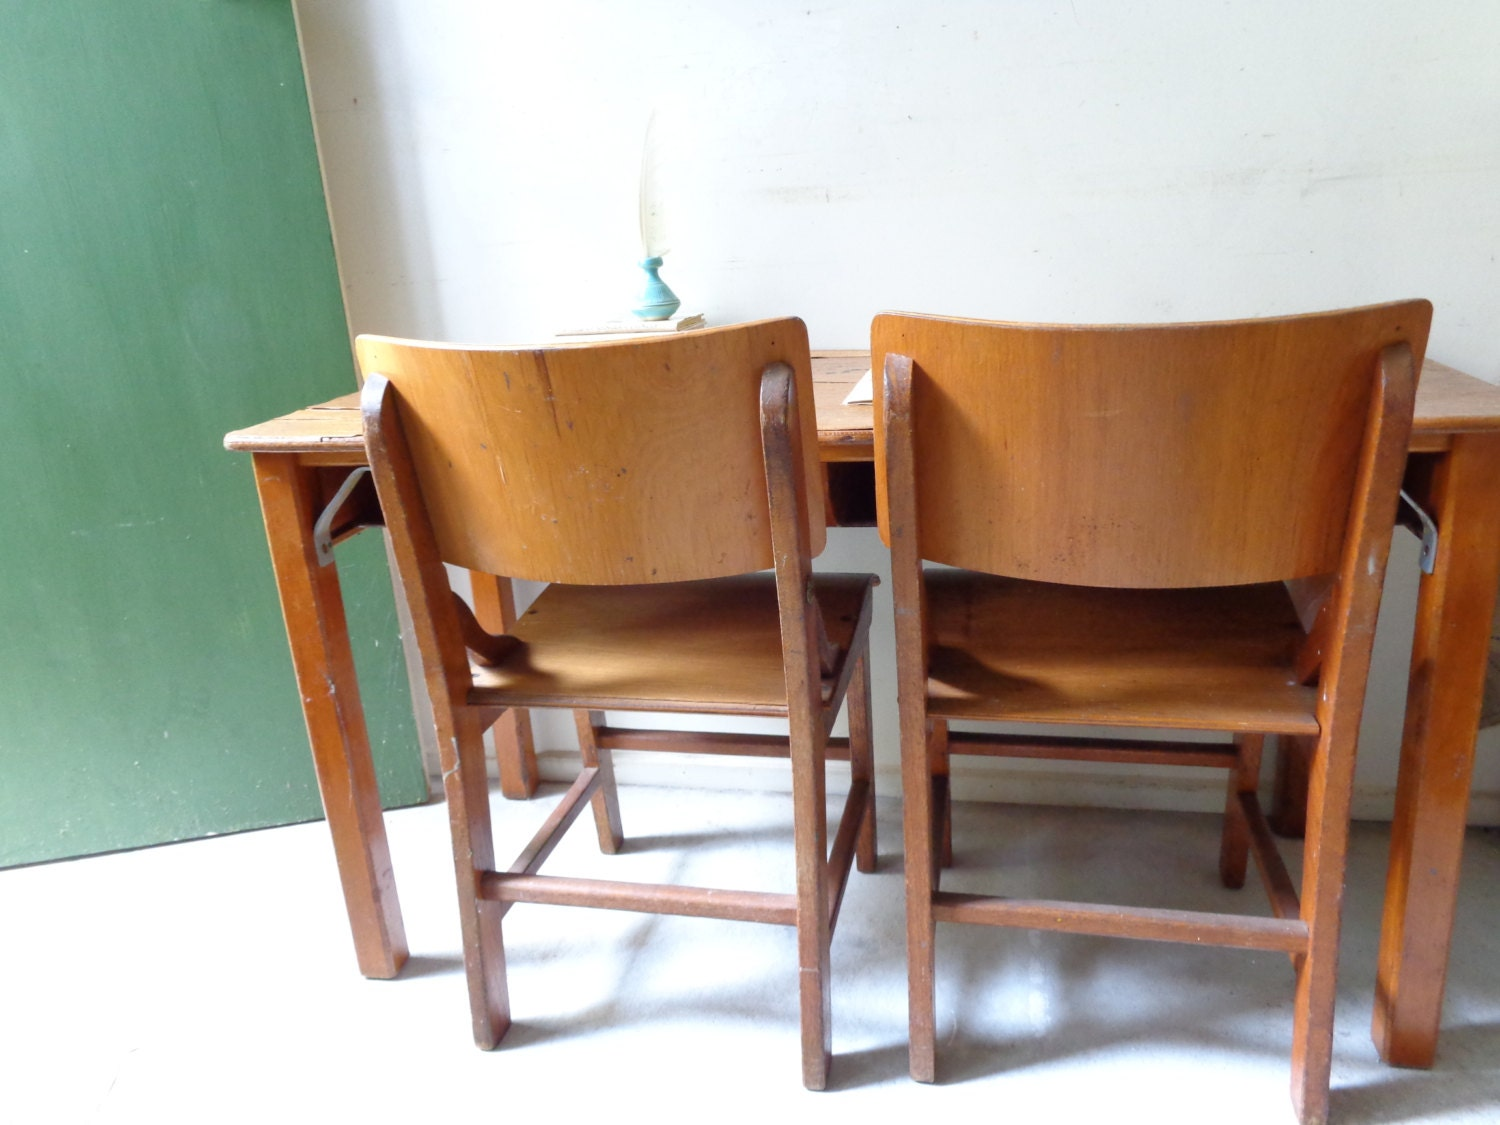 Vintage Wooden Double School Desk with Original Chairs PICK